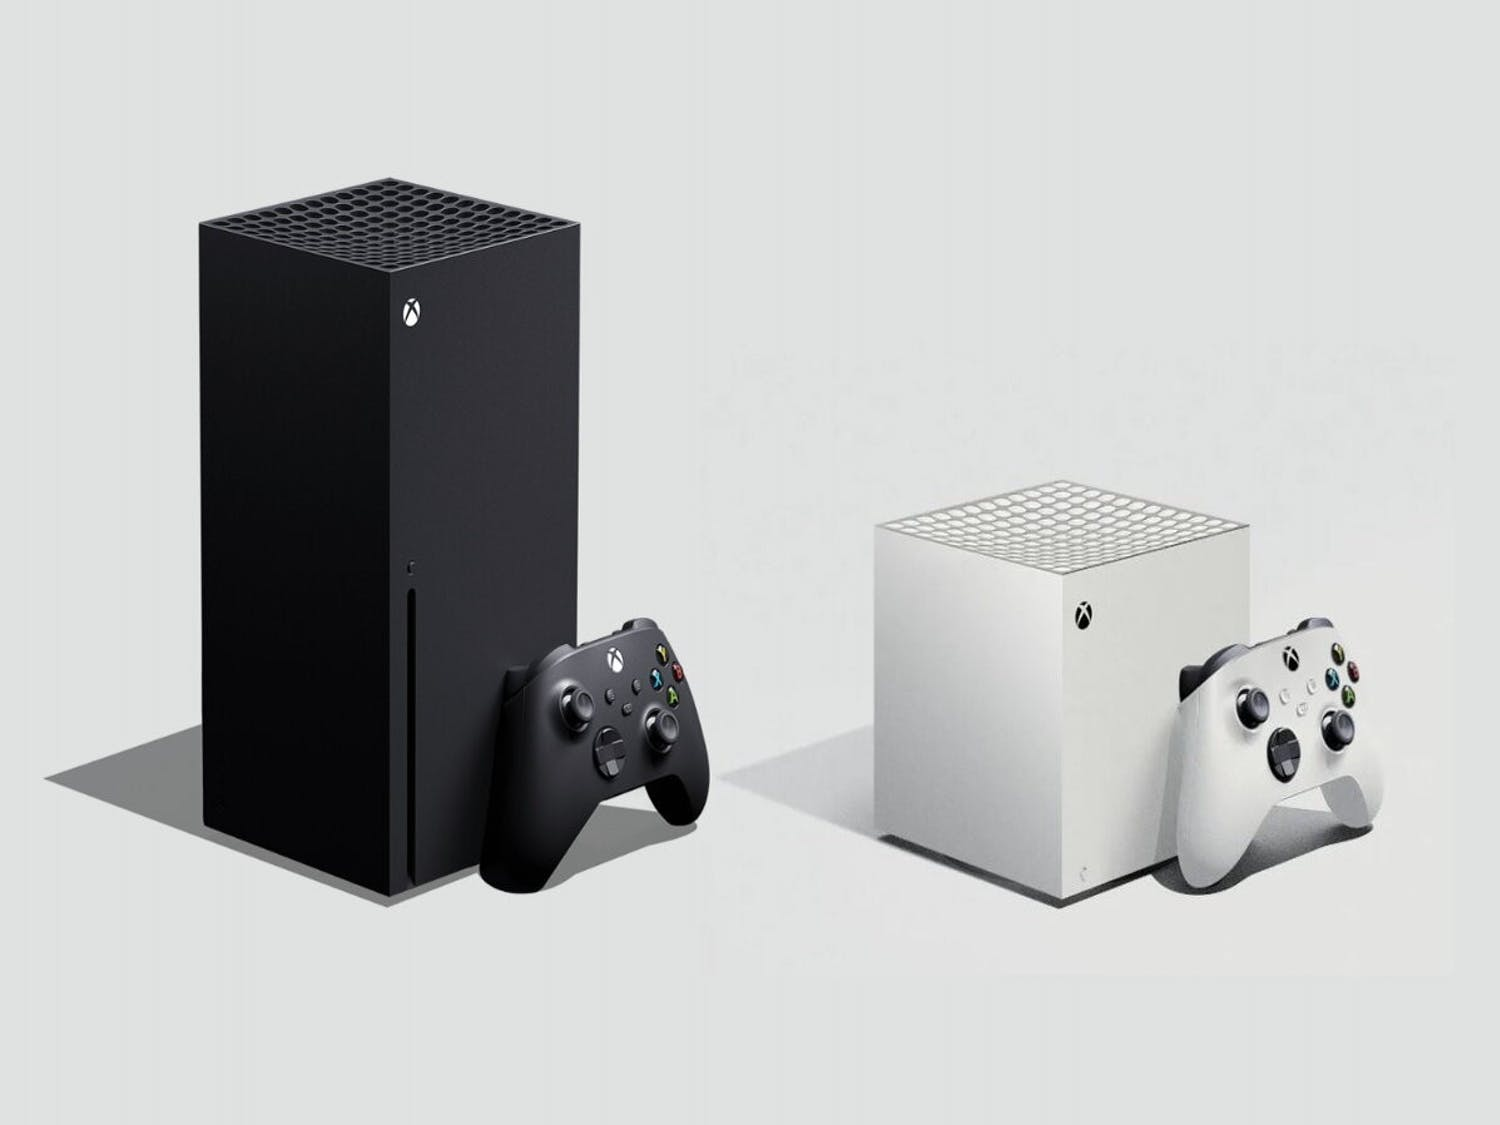 With the holiday season right around the corner, it's time to decide whether the new Xbox Series X or the Playstation 5 will be the best gift of the year.